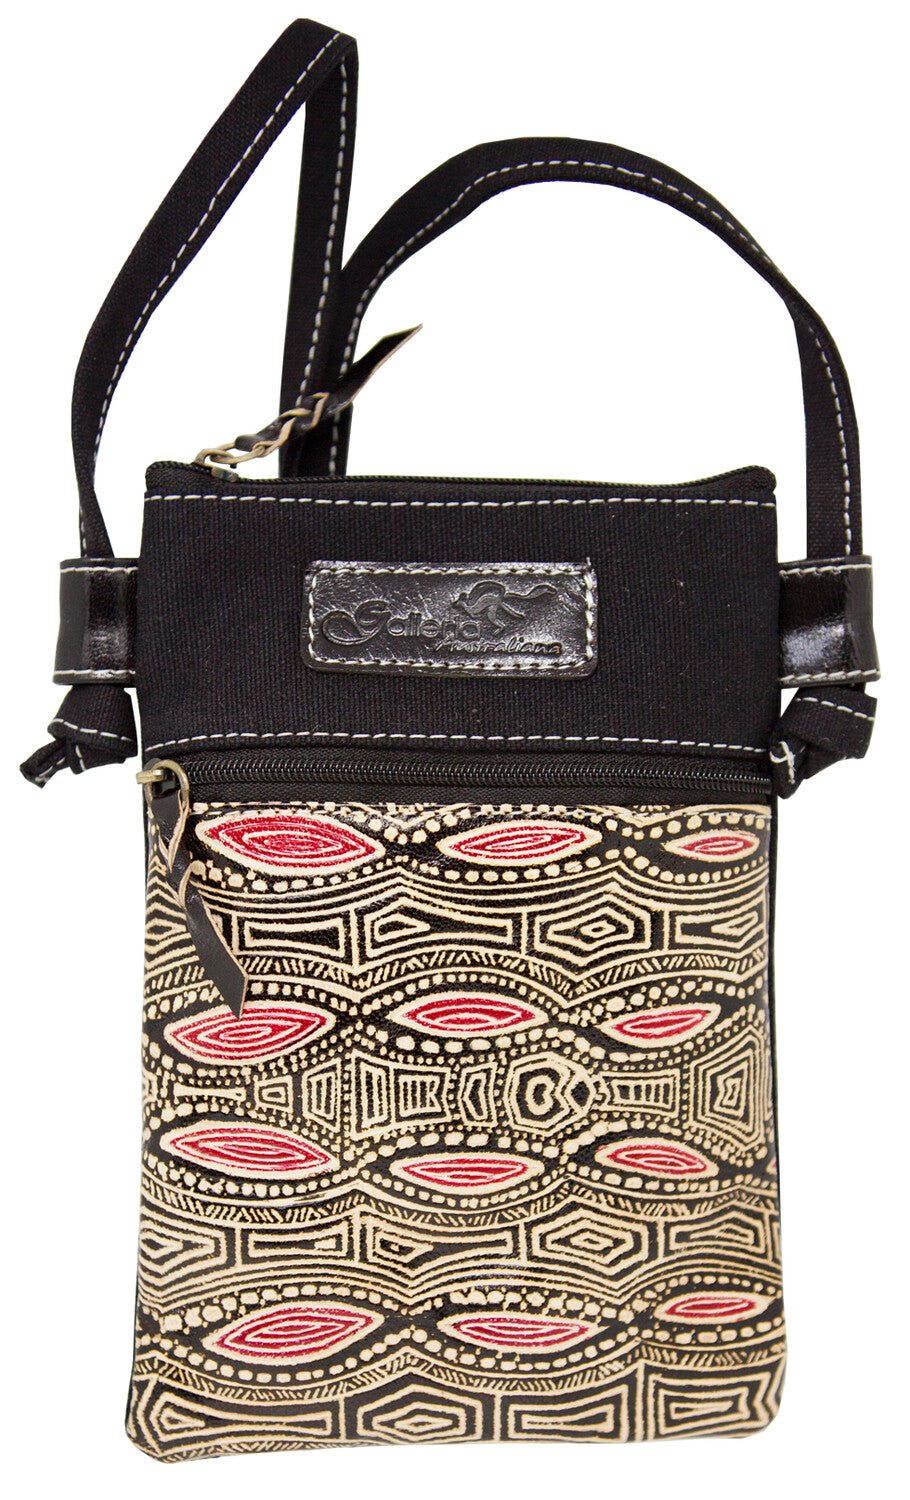 Australian indigenous Artist Yakinno Gunditjmara Dreaming Leather/Blue Canvas X Body Hippie Bag